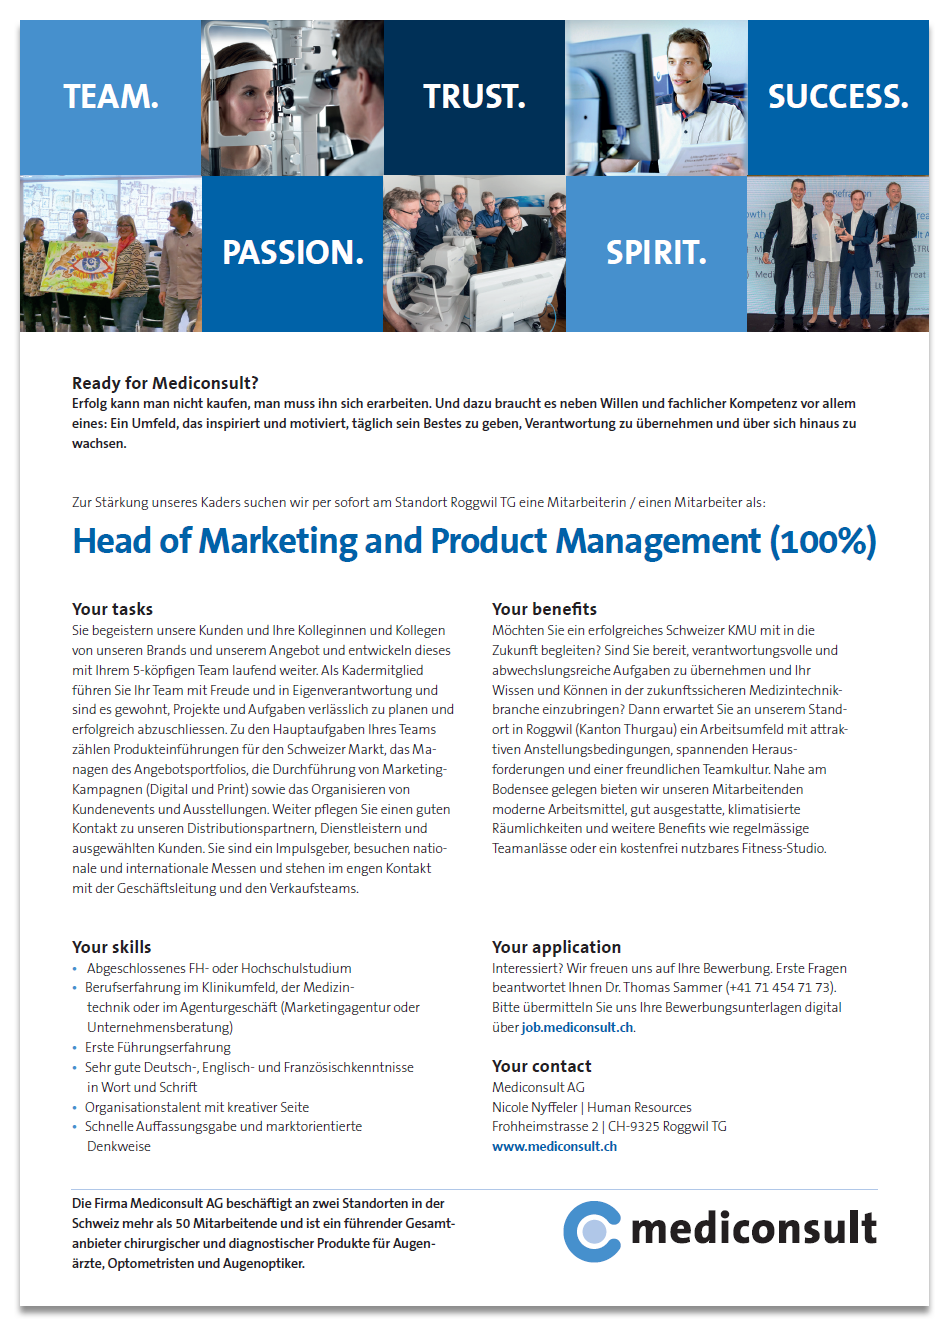 Mediconsult-Stellenangebote-2019_Marketing&Product-Management.png